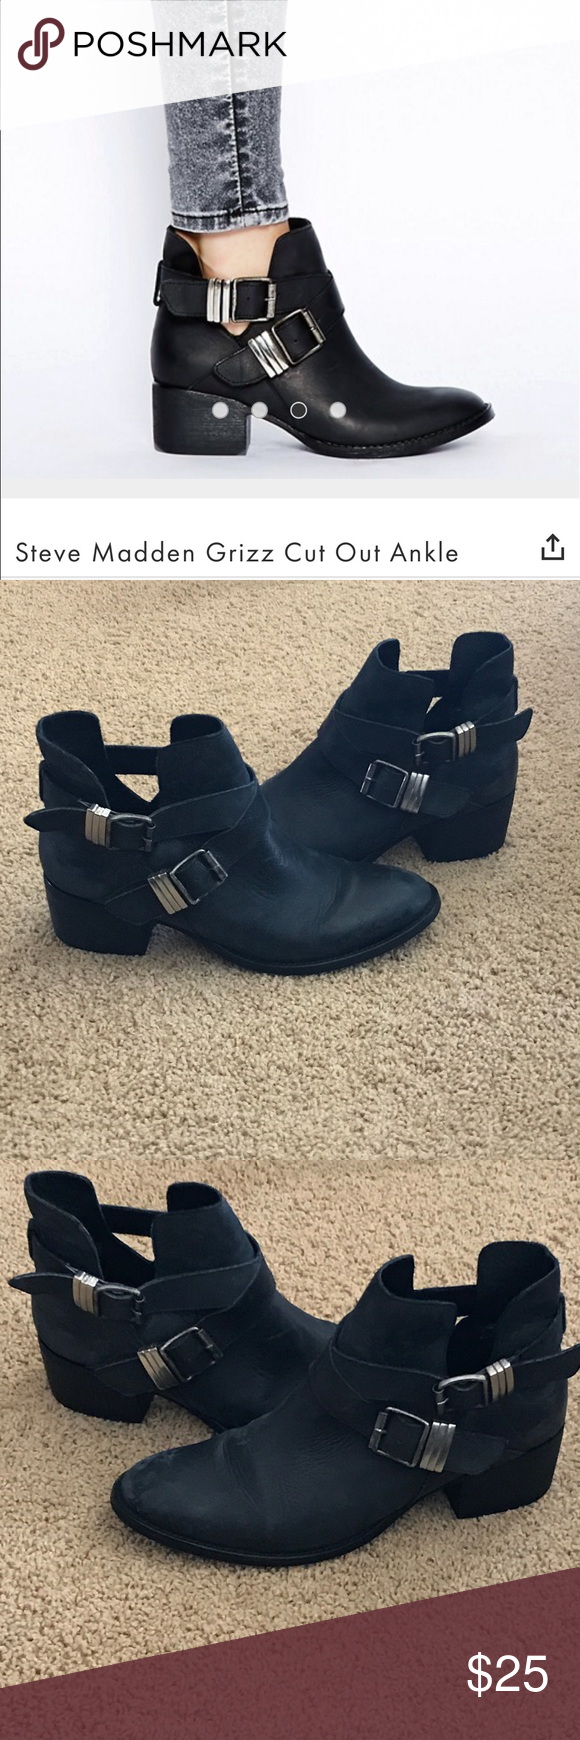 Steve Madden Grizz Cutout Ankle Boots *Gently Worn* There is some wear on the leather but it doesn't make the boot look bad (see pictures). I love these boots and have gotten so many compliments every time I wore them ❤️ Steve Madden Shoes Ankle Boots & Booties